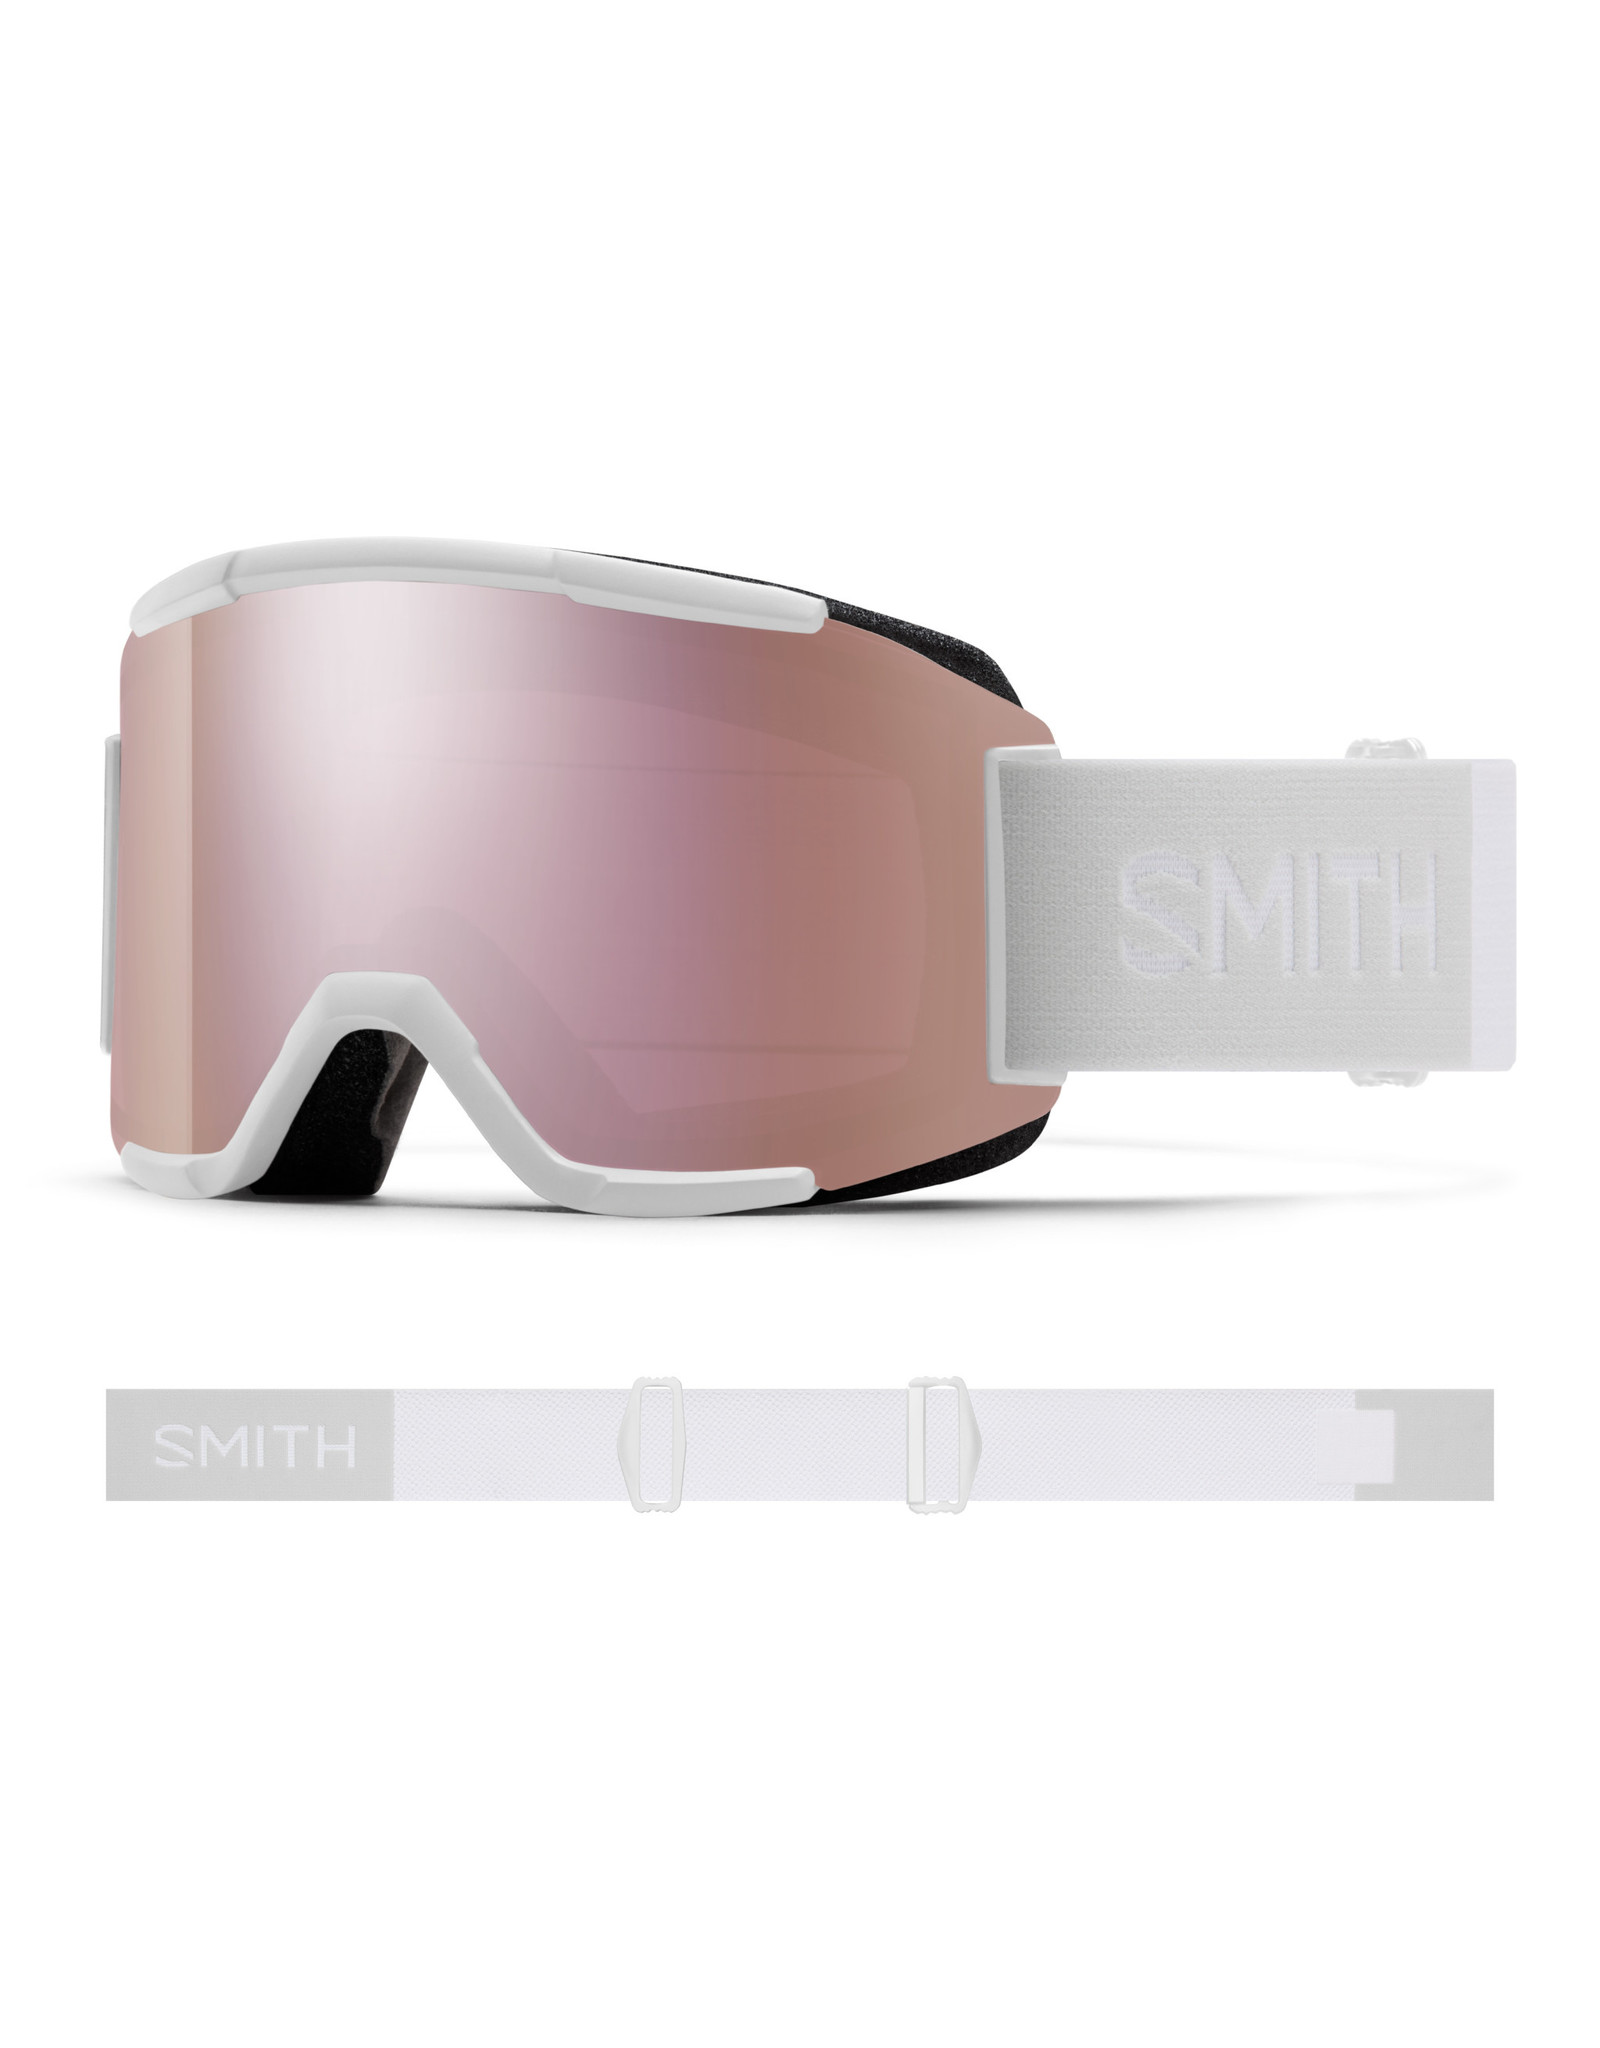 Smith SMITH SQUAD WHITE VAPOR 20 SKI GOGGLE